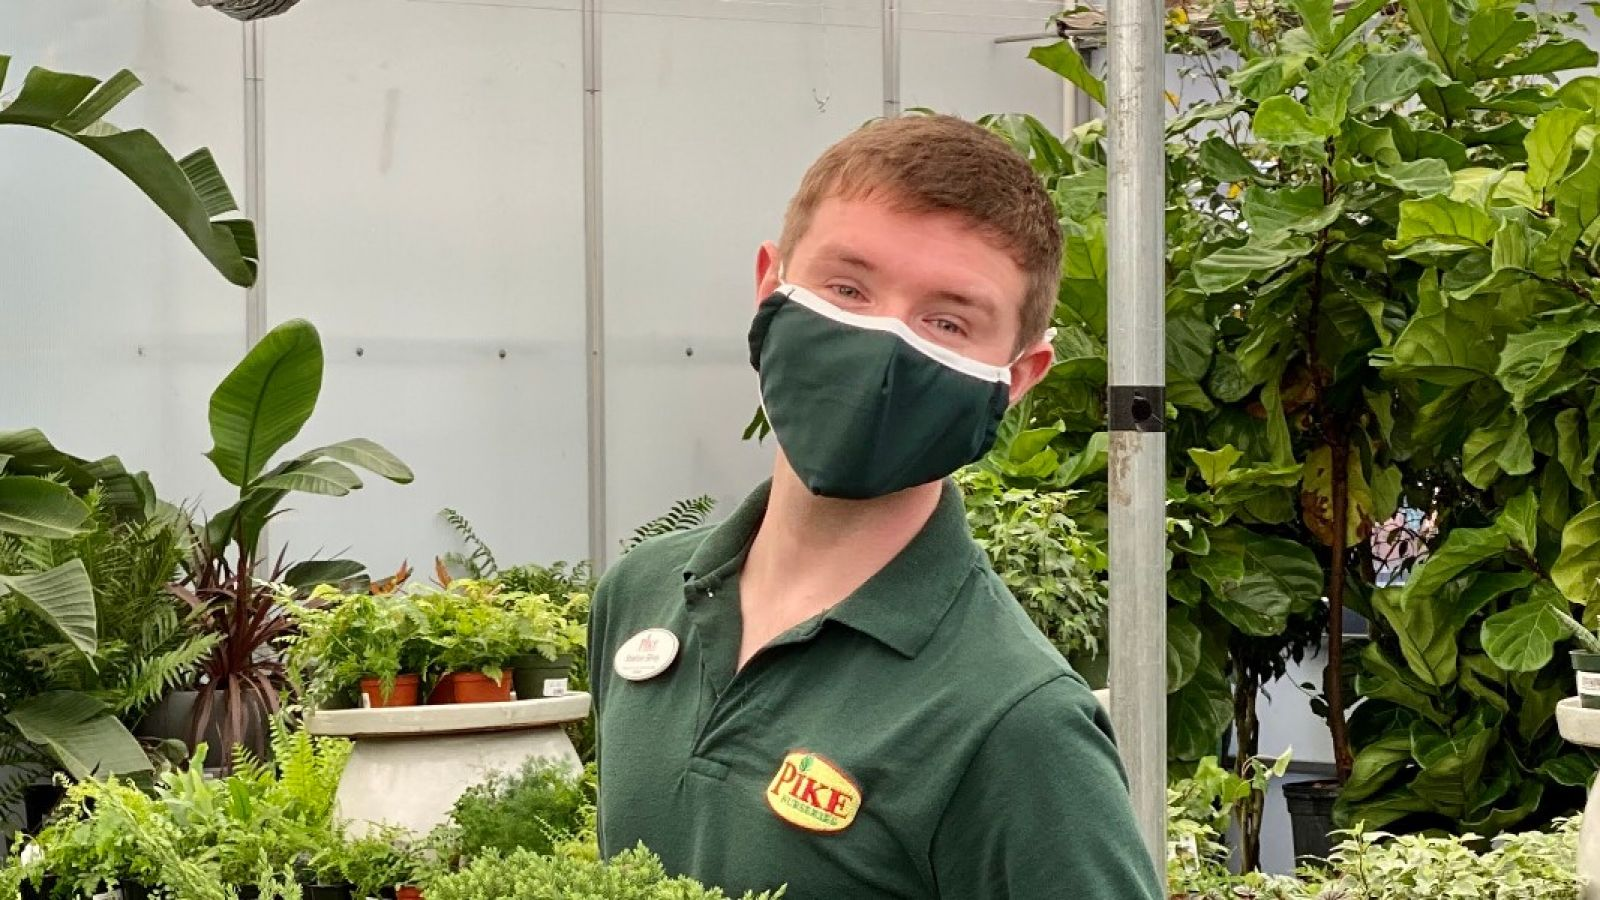 pike nurseries employee in a mask